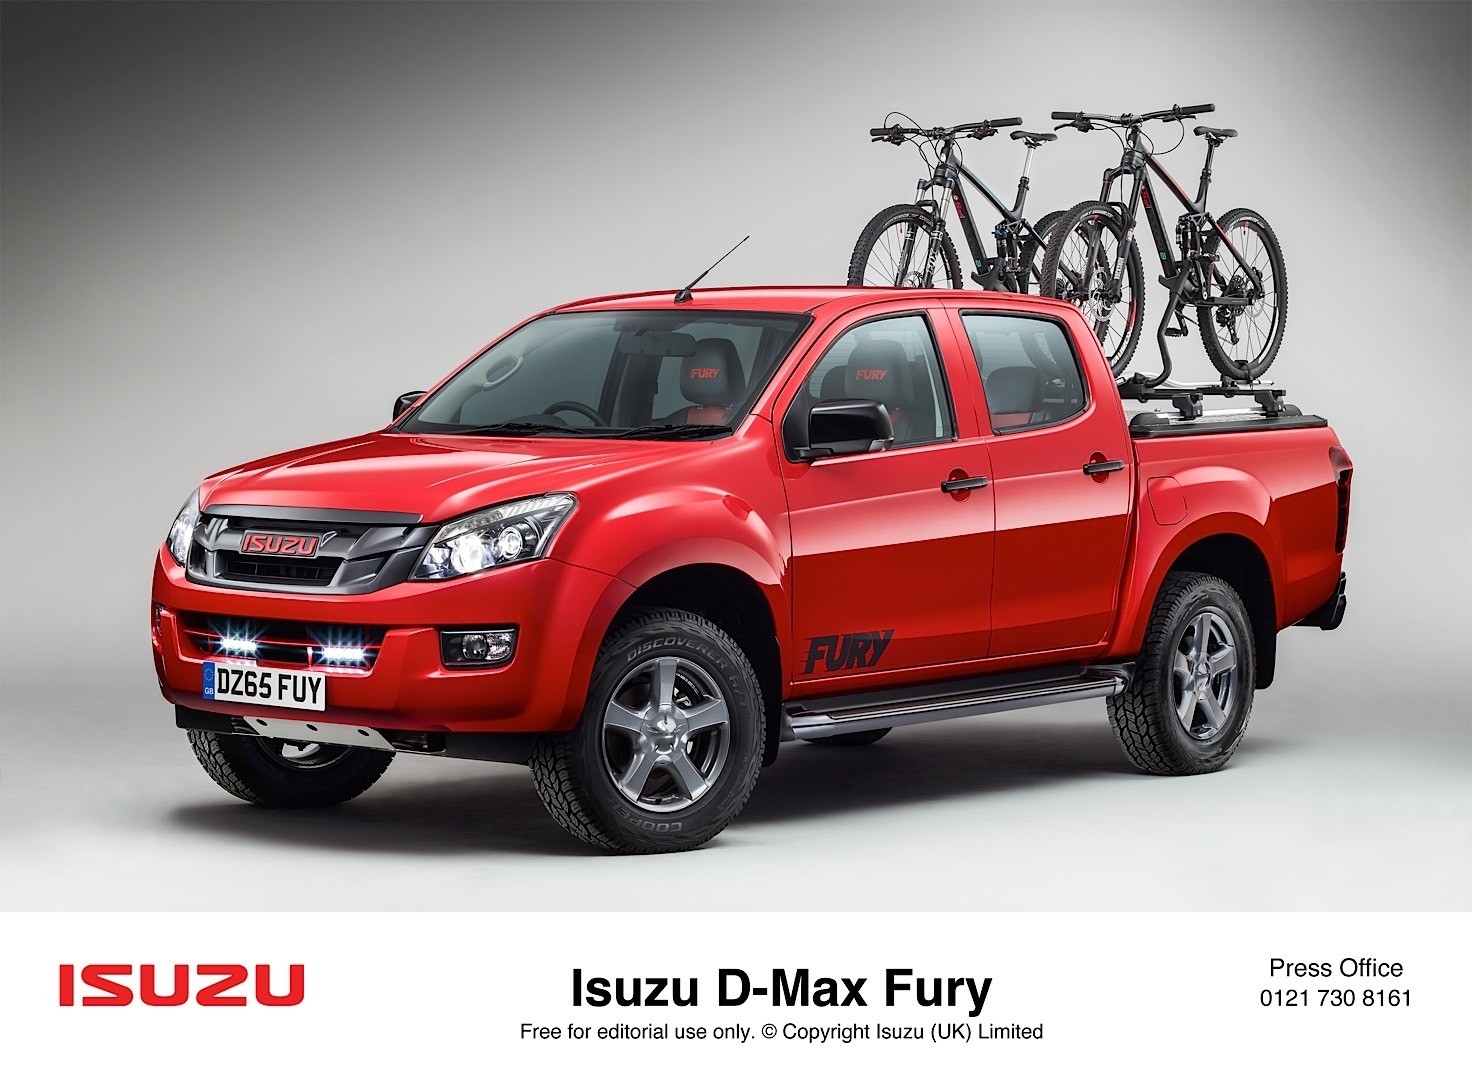 Isuzu D Max Range Adds Fury Variant Has Nothing To Do